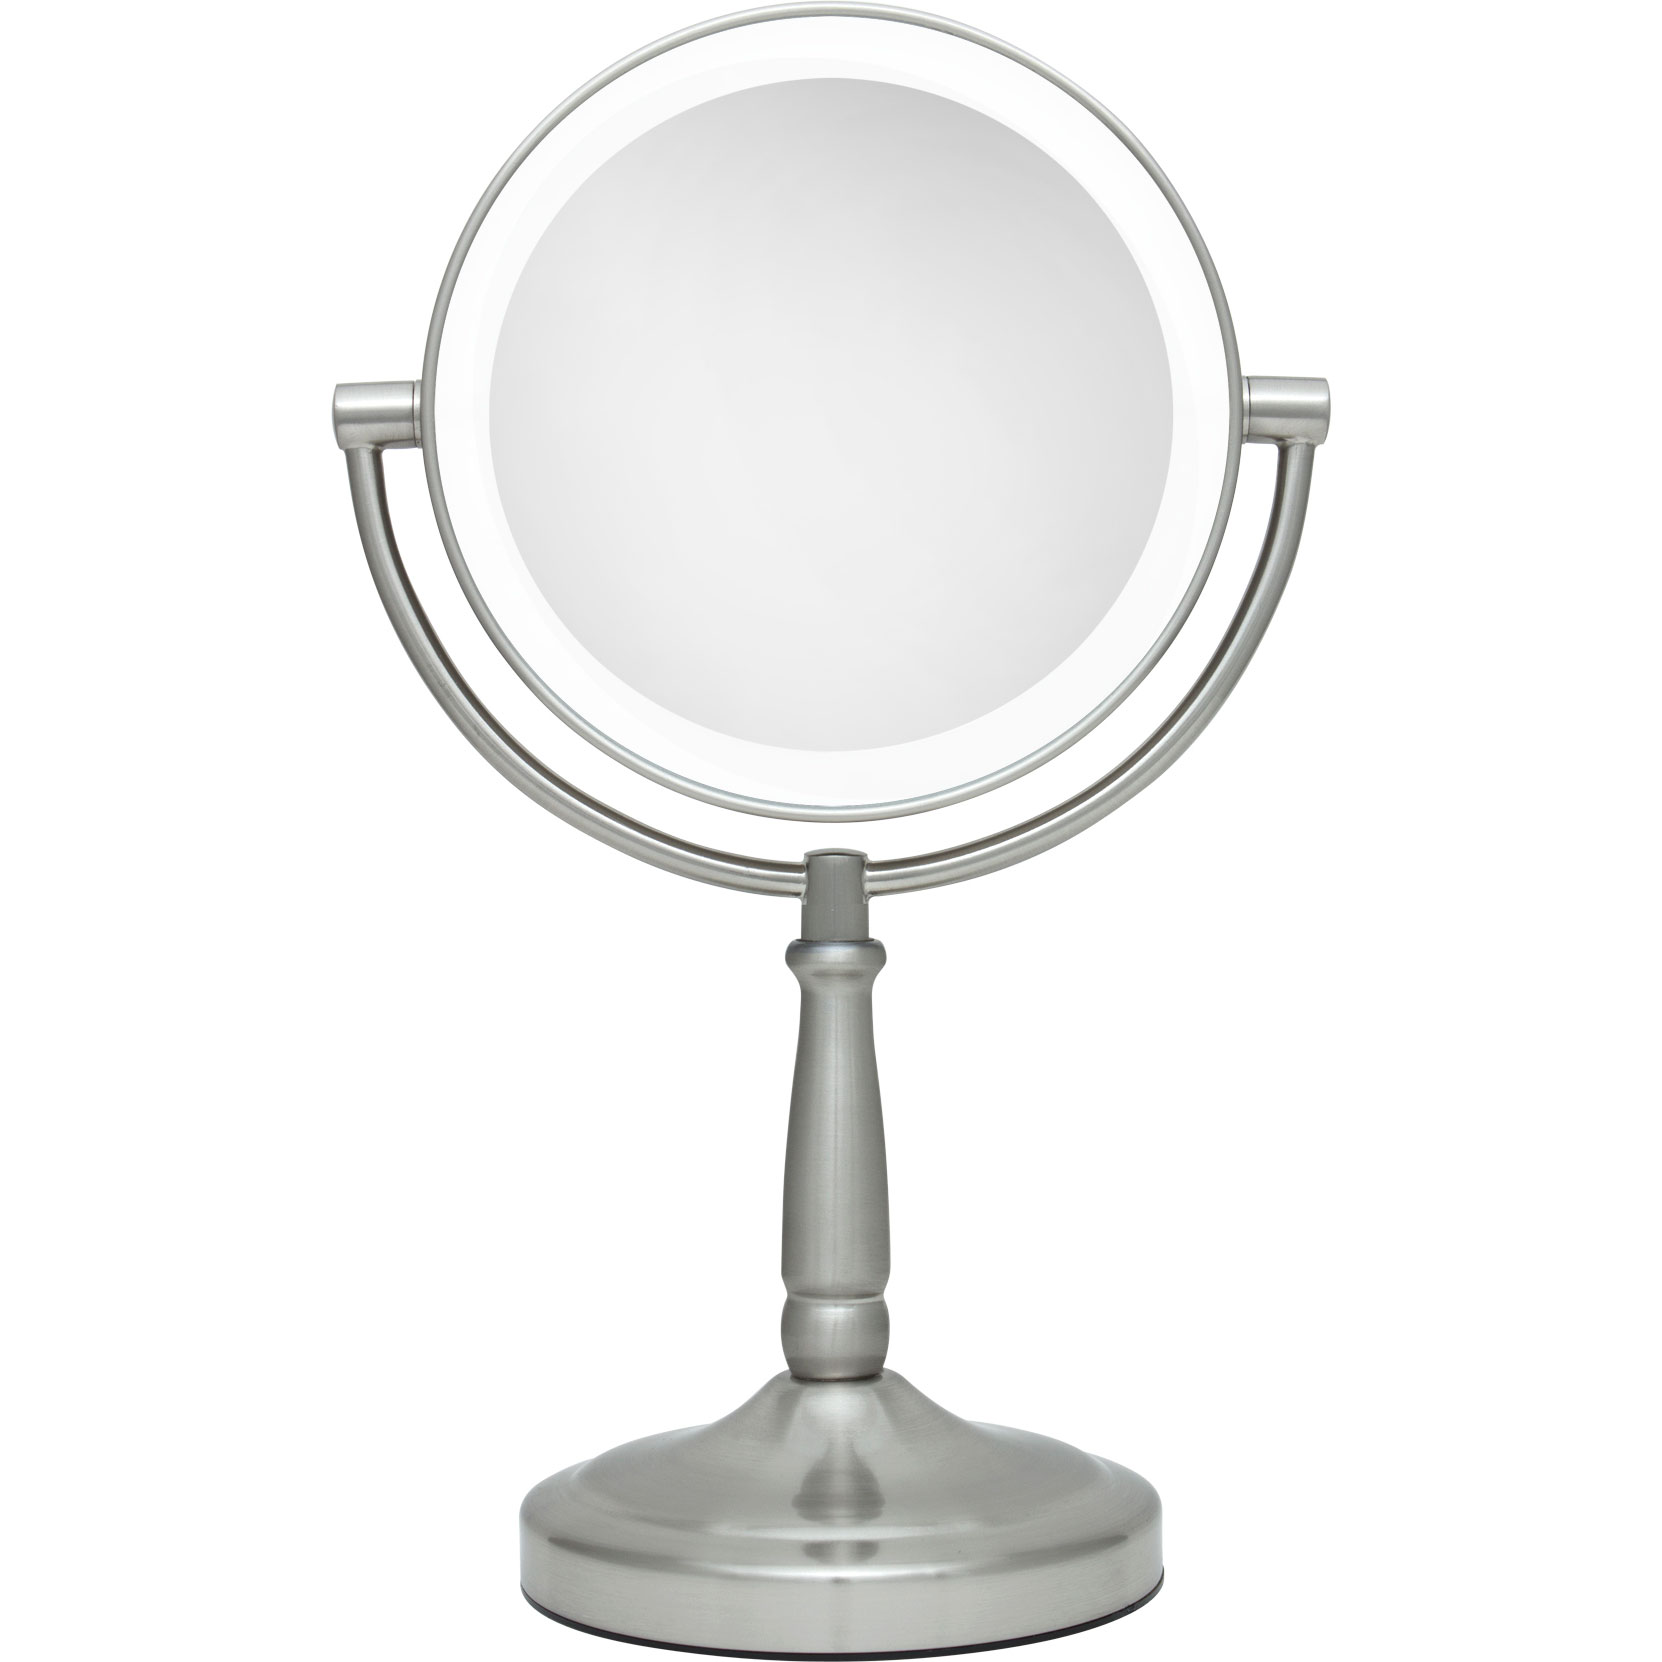 makeup mirror with led lights. 5x/1x cordless dual sided led light vanity mirror by zadro | ledv45 makeup with led lights 0